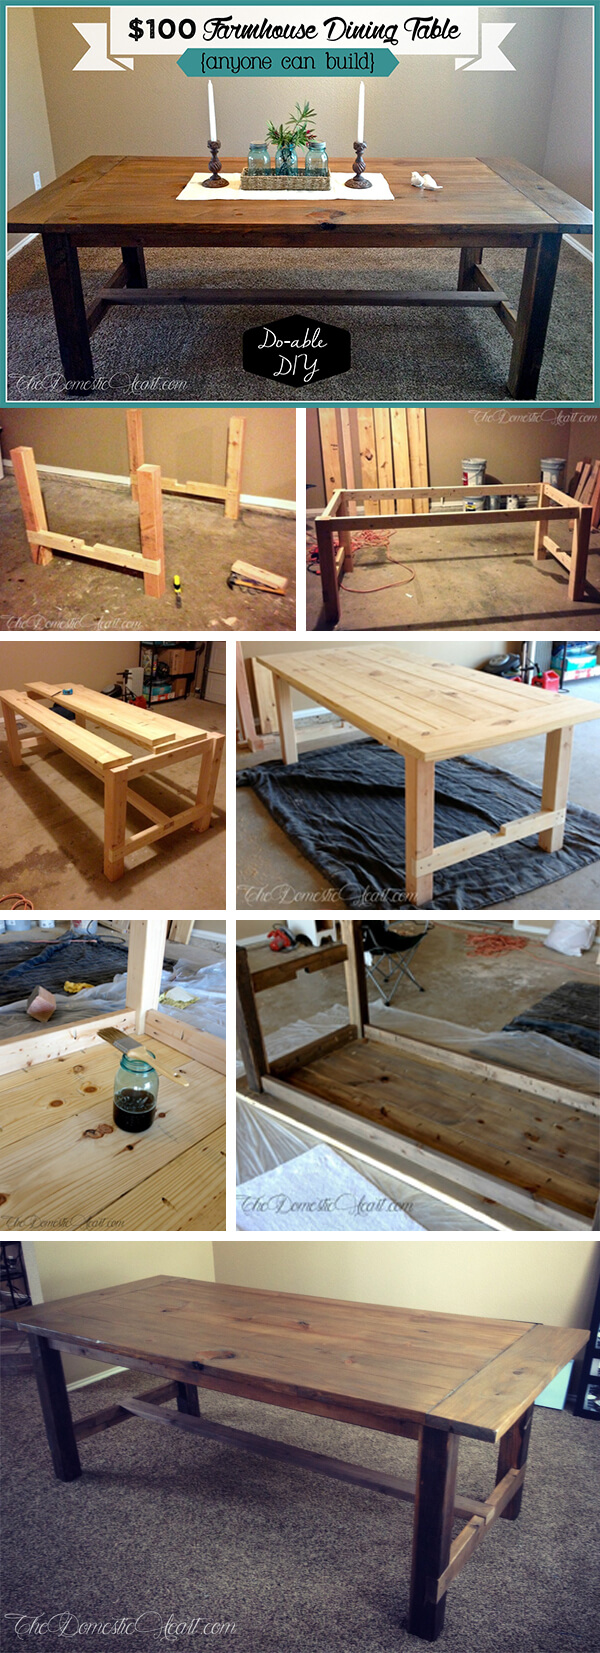 Country Dining Furniture on a Budget